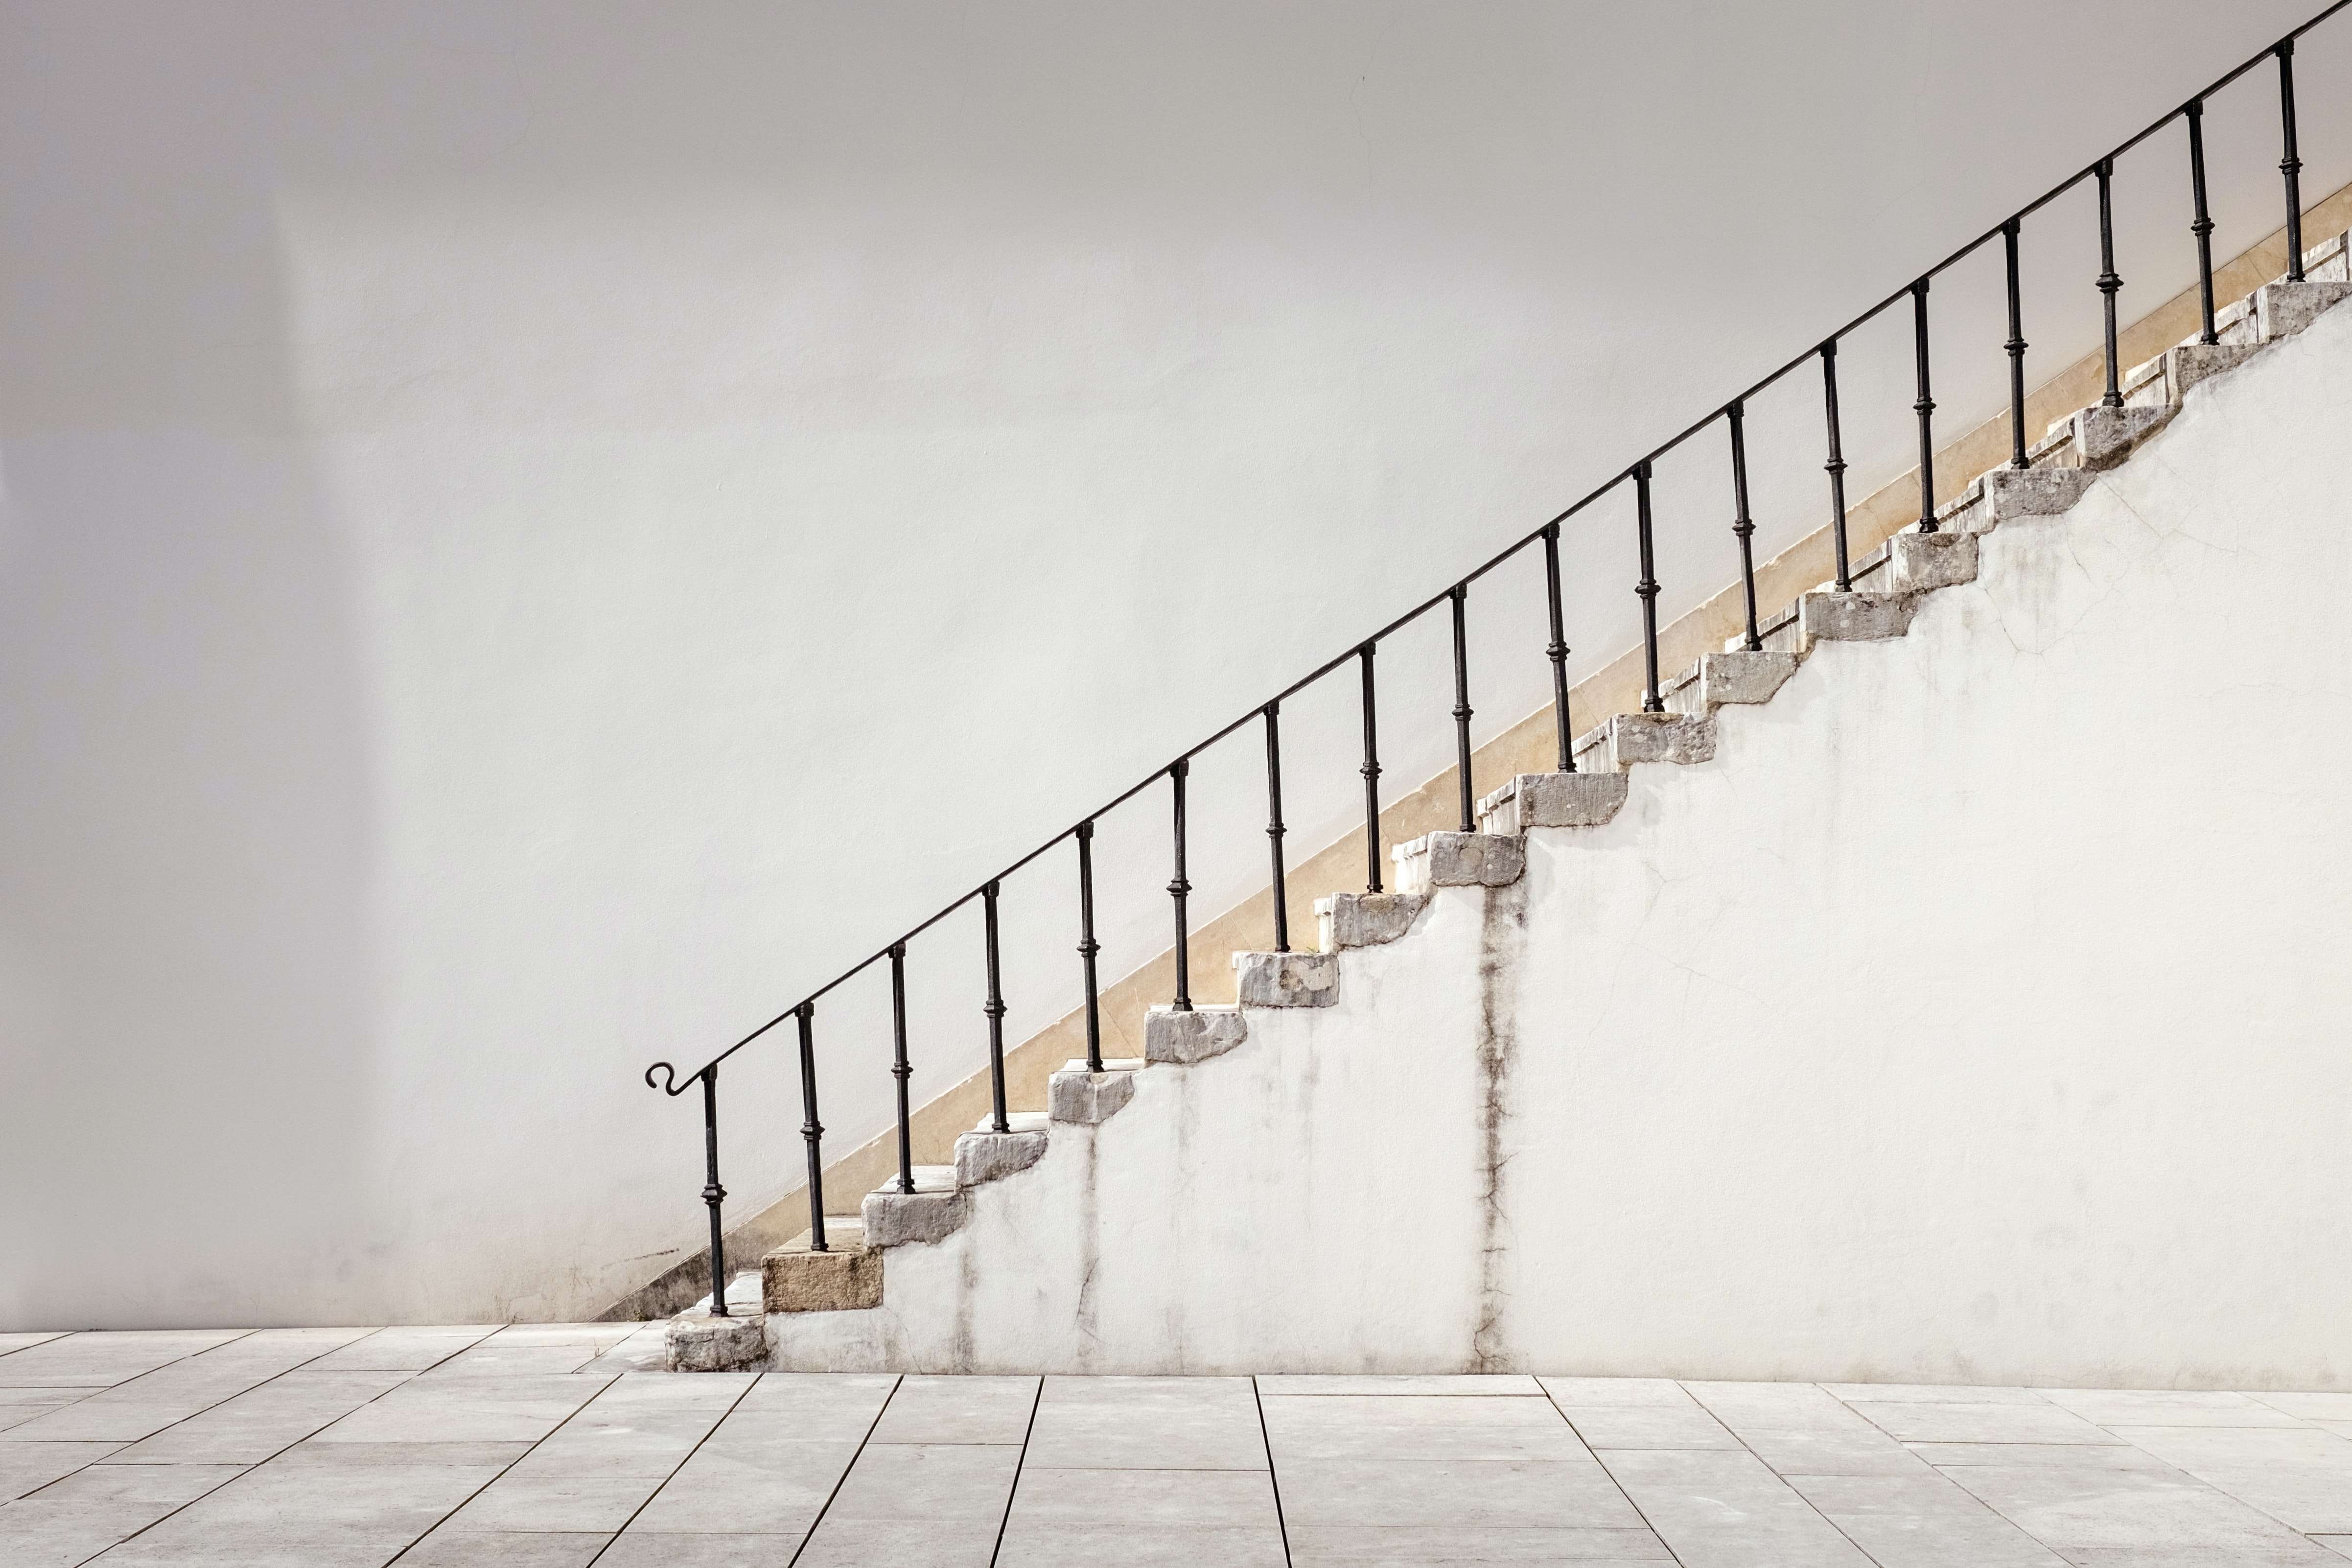 A side shot of old white stairs with a black bannister